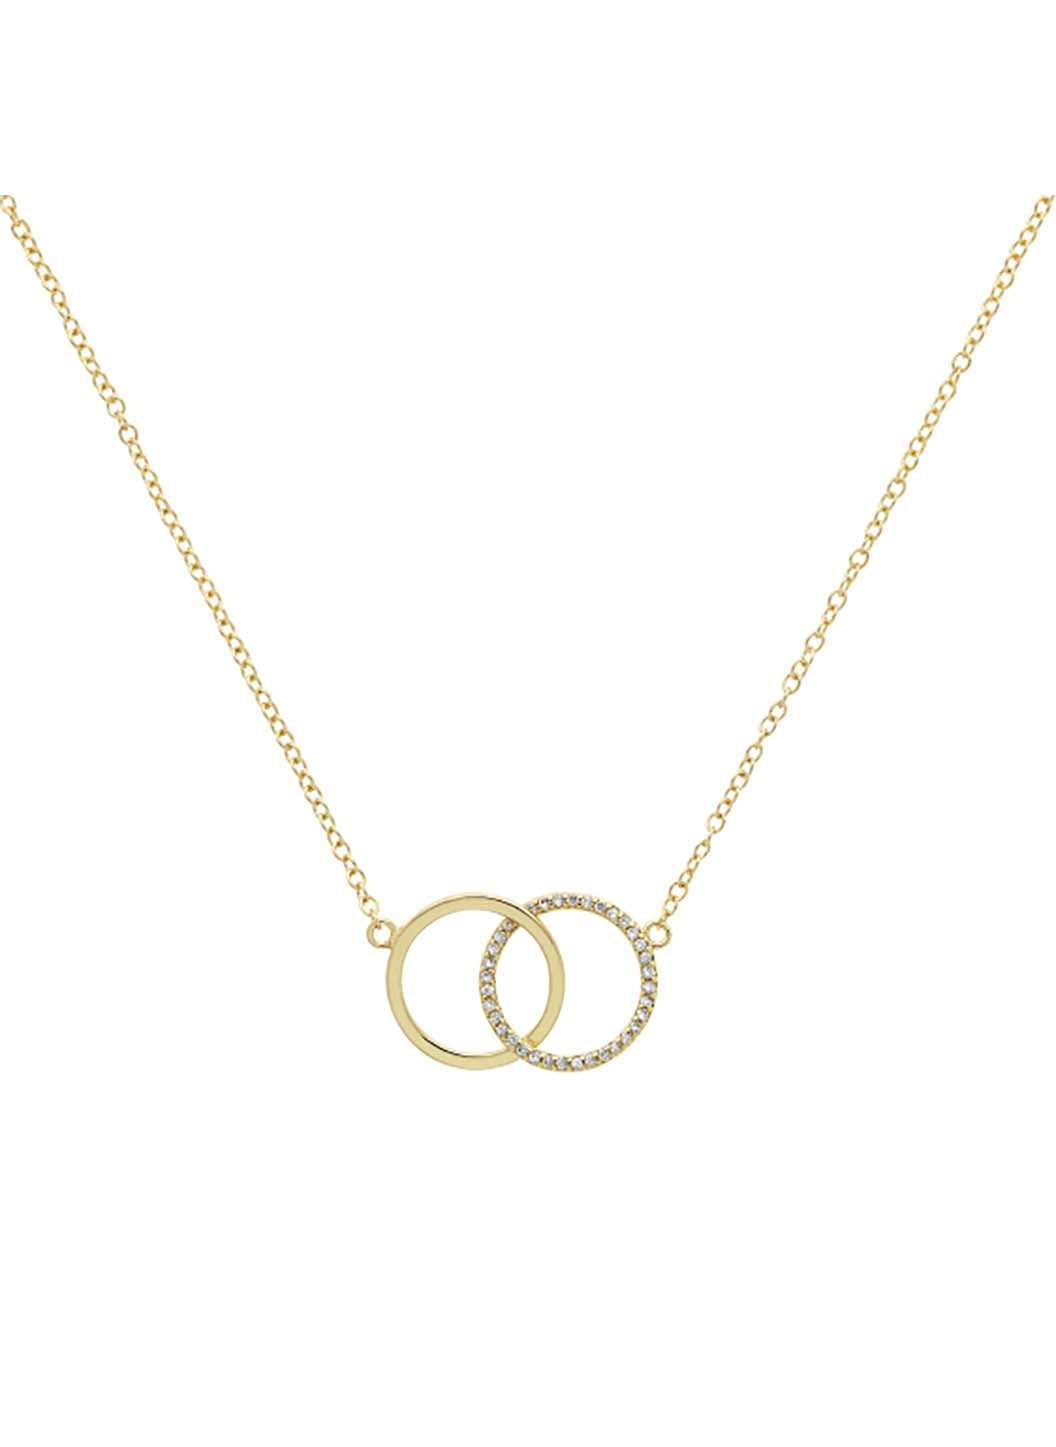 Gold Swarovski Double Hoop Necklace